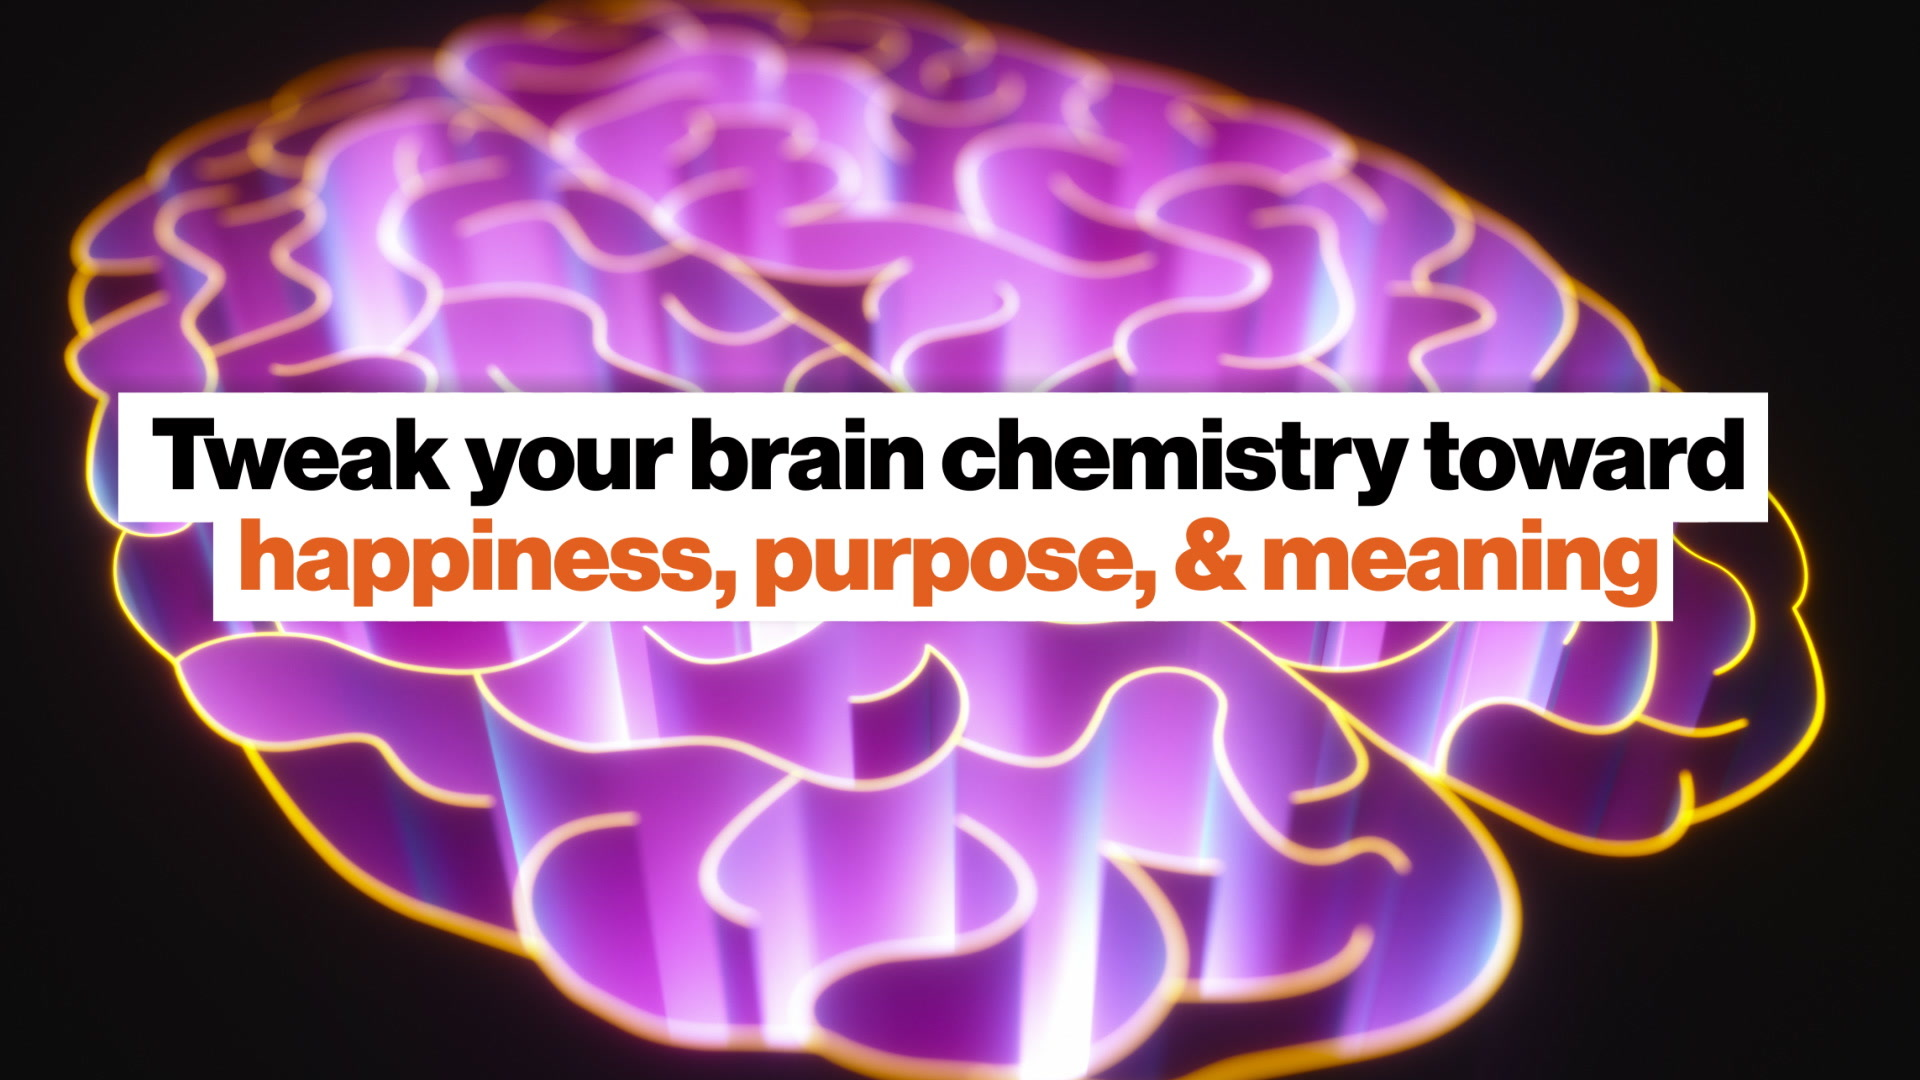 Tweak your brain chemistry toward happiness, purpose, meaning